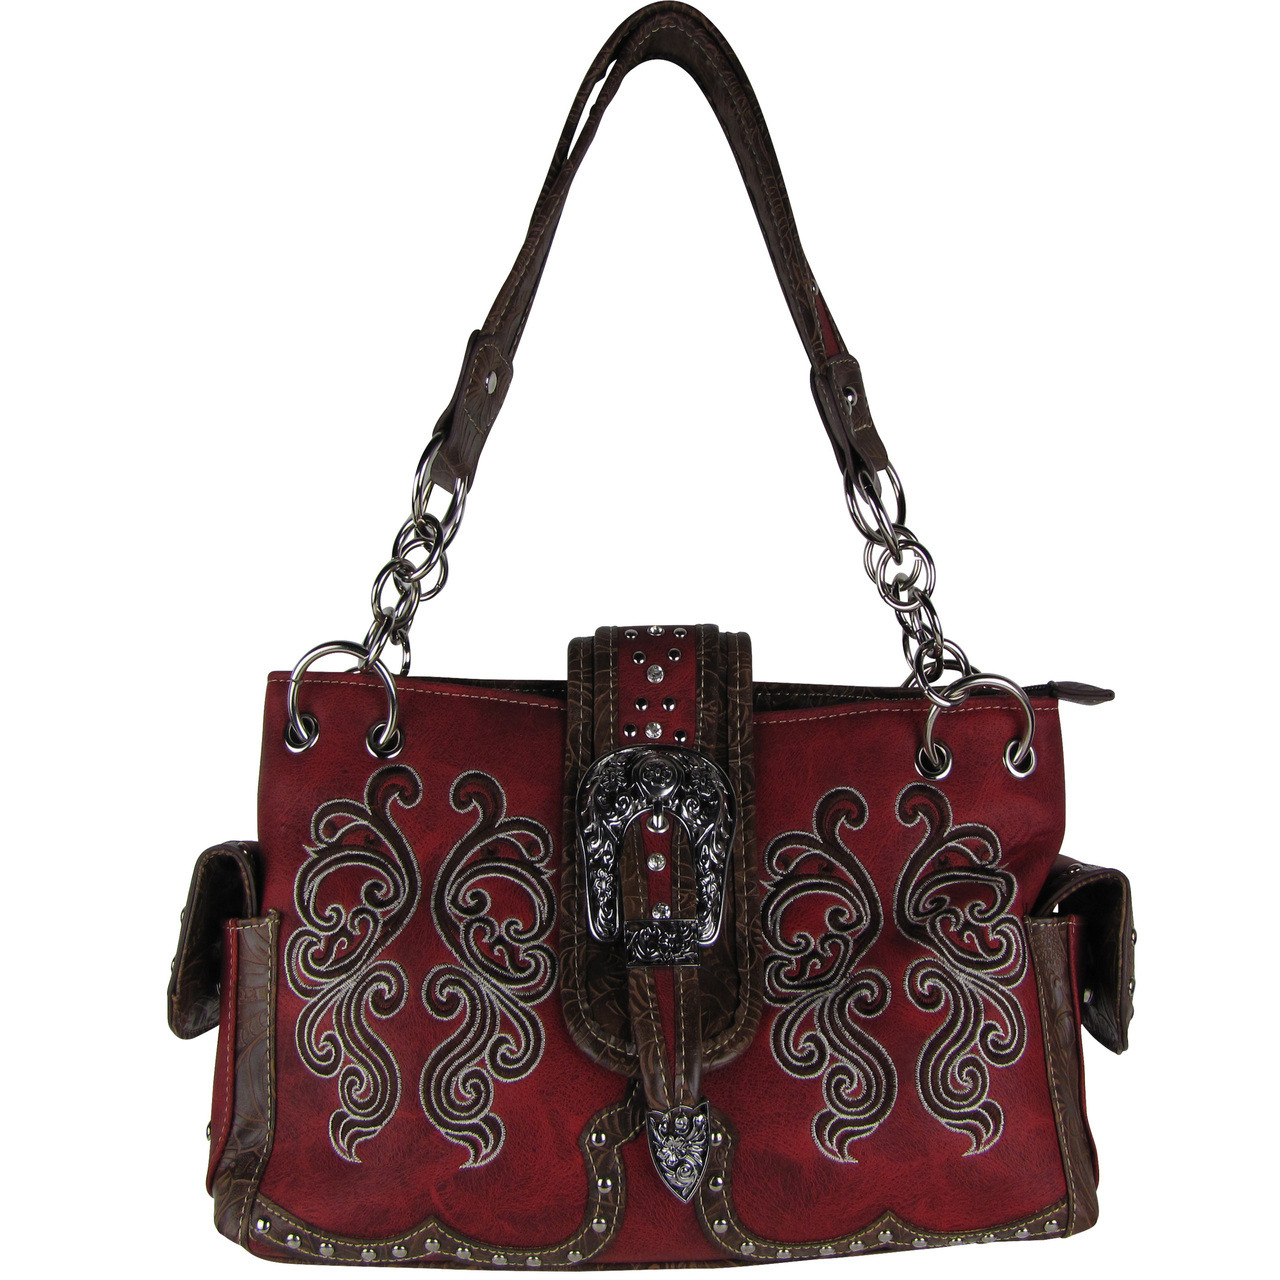 RED WESTERN BUCKLE LOOK SHOULDER HANDBAG HB1-39W62RED